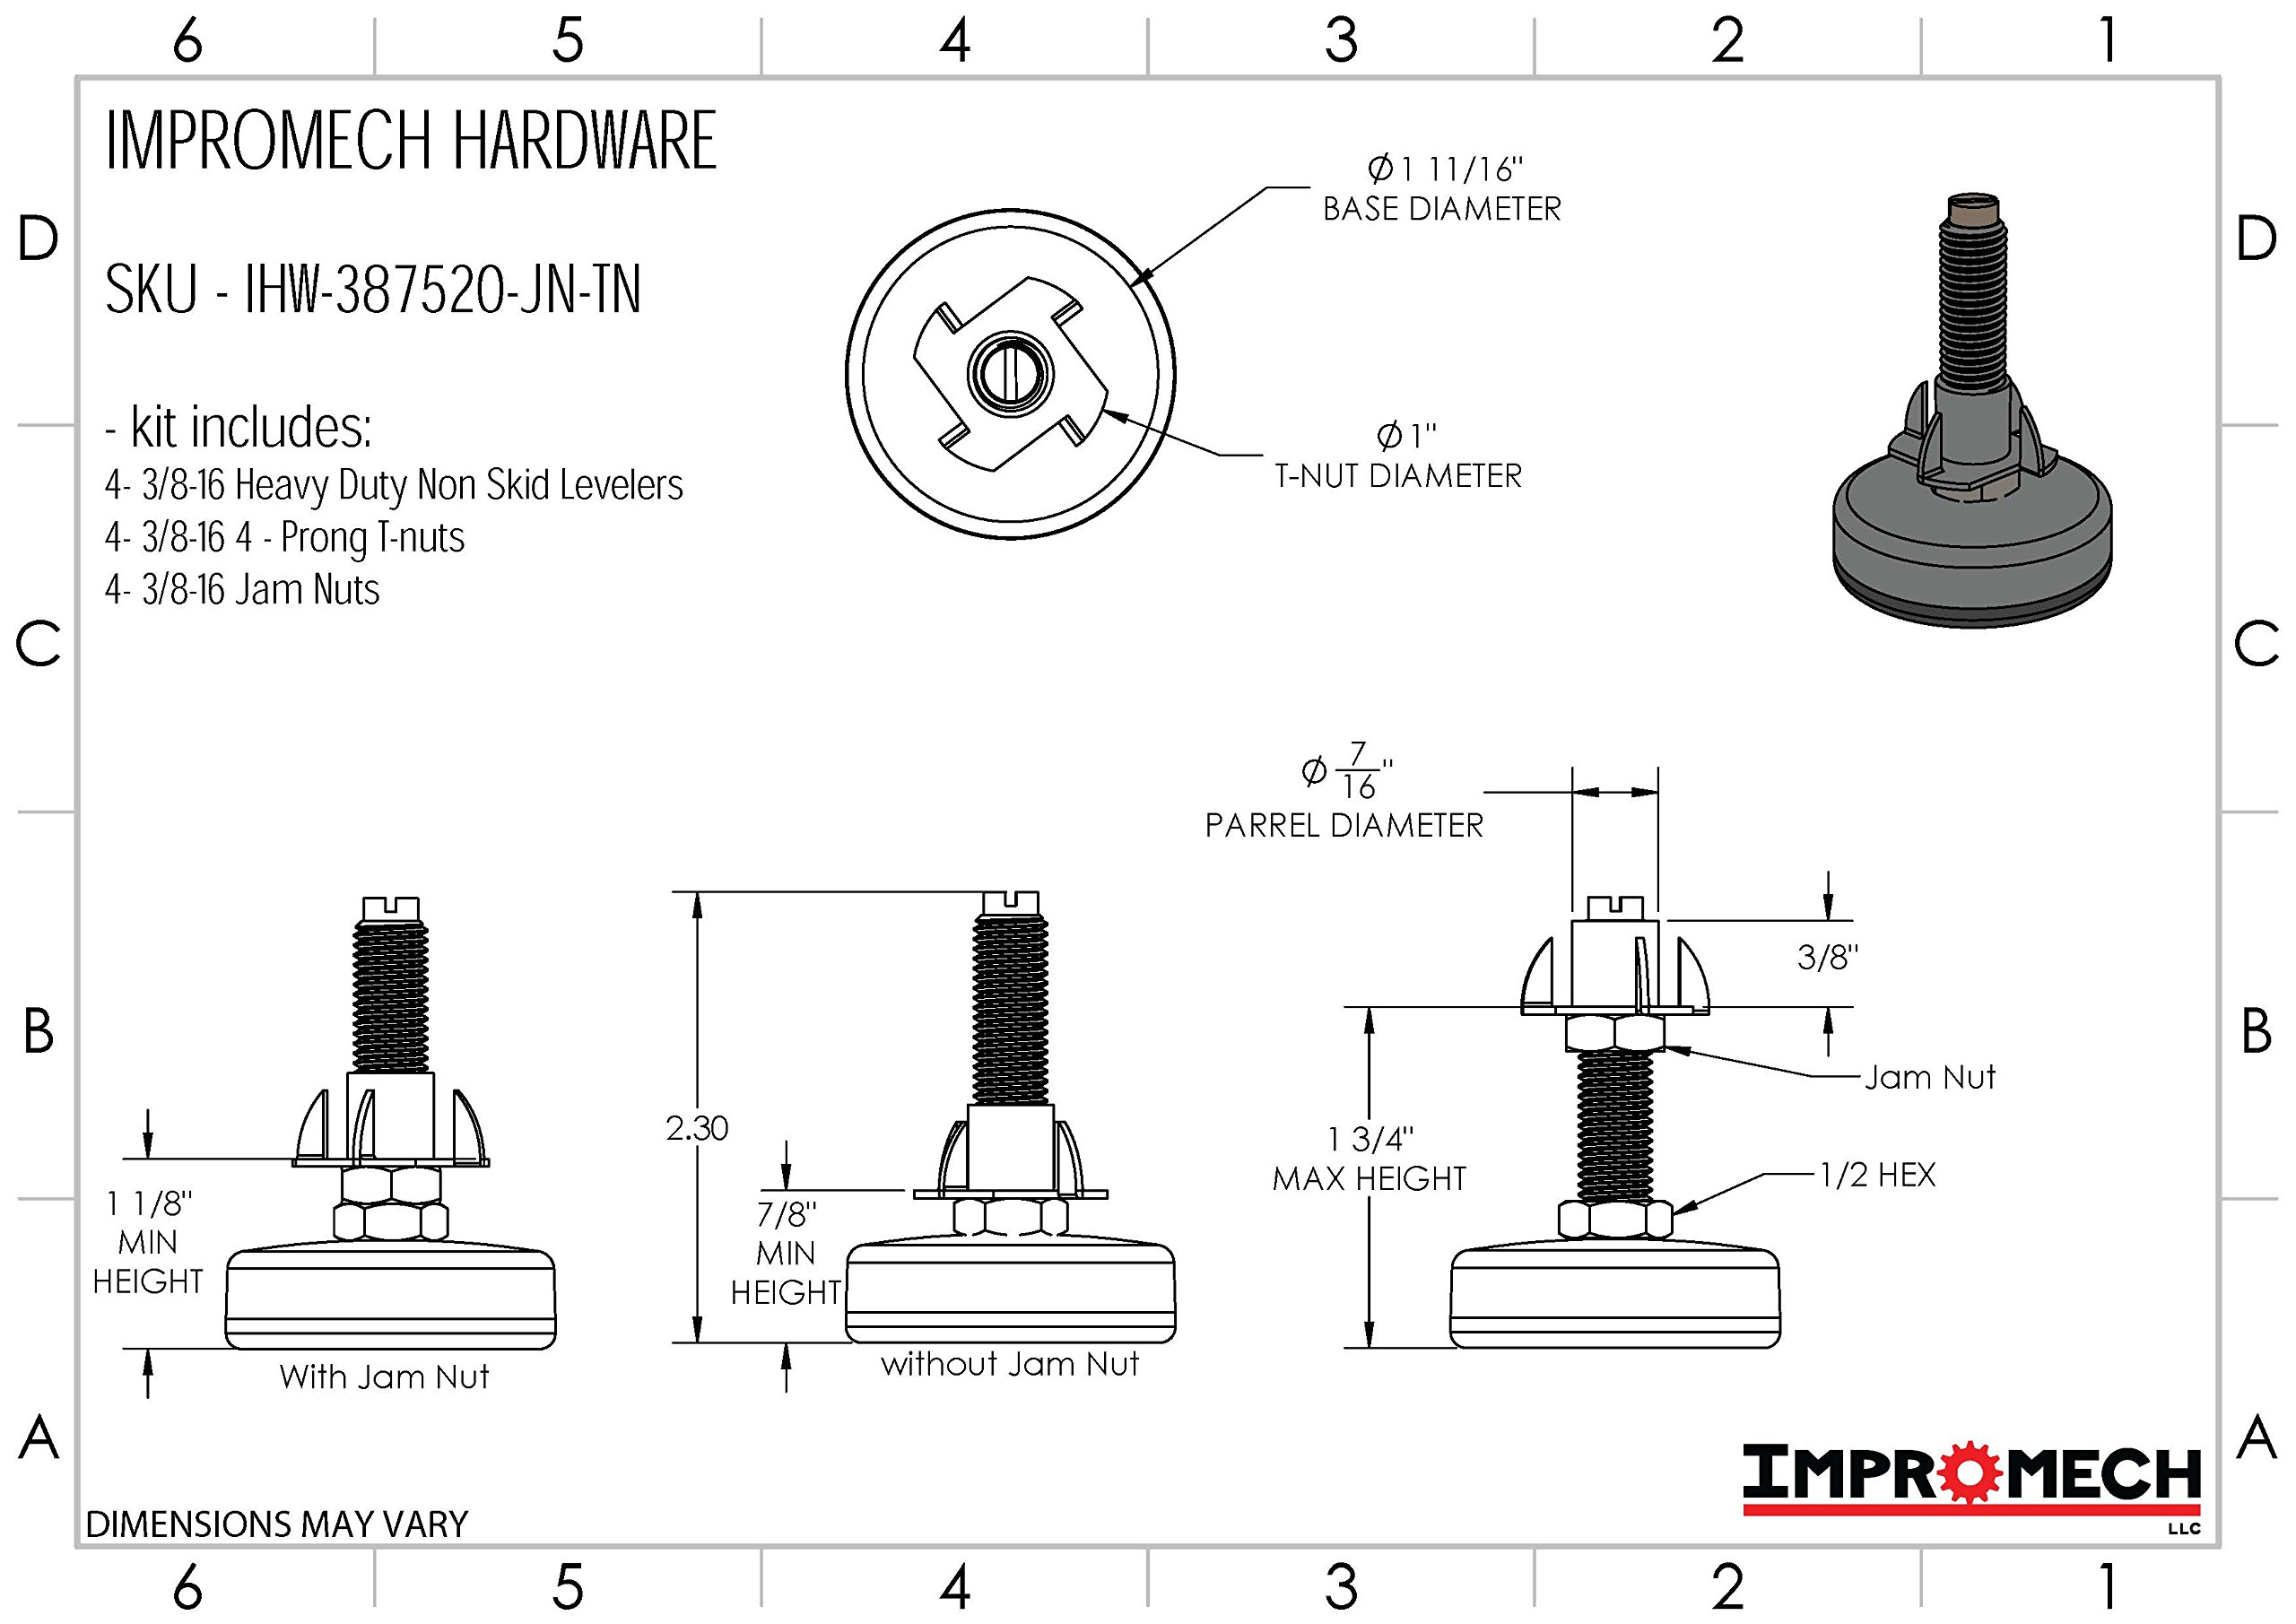 Heavy Duty Furniture Leveler Tee Nut Kit – Set of 4-3/8-16 Non-Skid Leg Levelers for Cabinets or Tables to Adjust Height of The Legs or Feet Jam Nuts to Stabilize Each Foot (Kit with 4 Prong T-Nuts) by Impromech Hardware (Image #4)